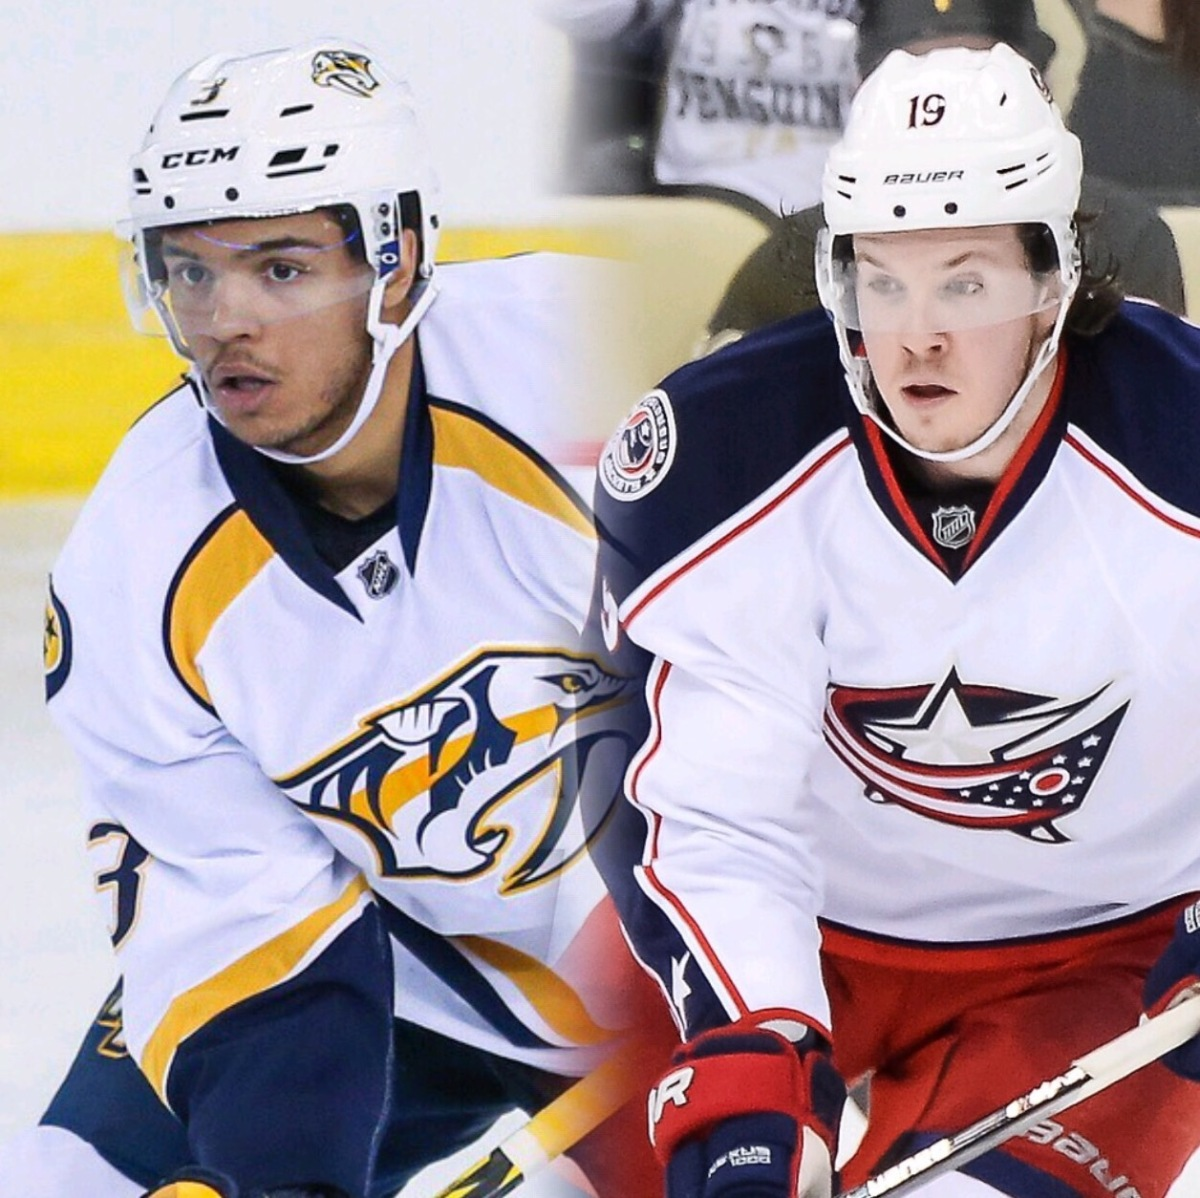 Who Got The Better Hair In The Johansen/Jones Trade?